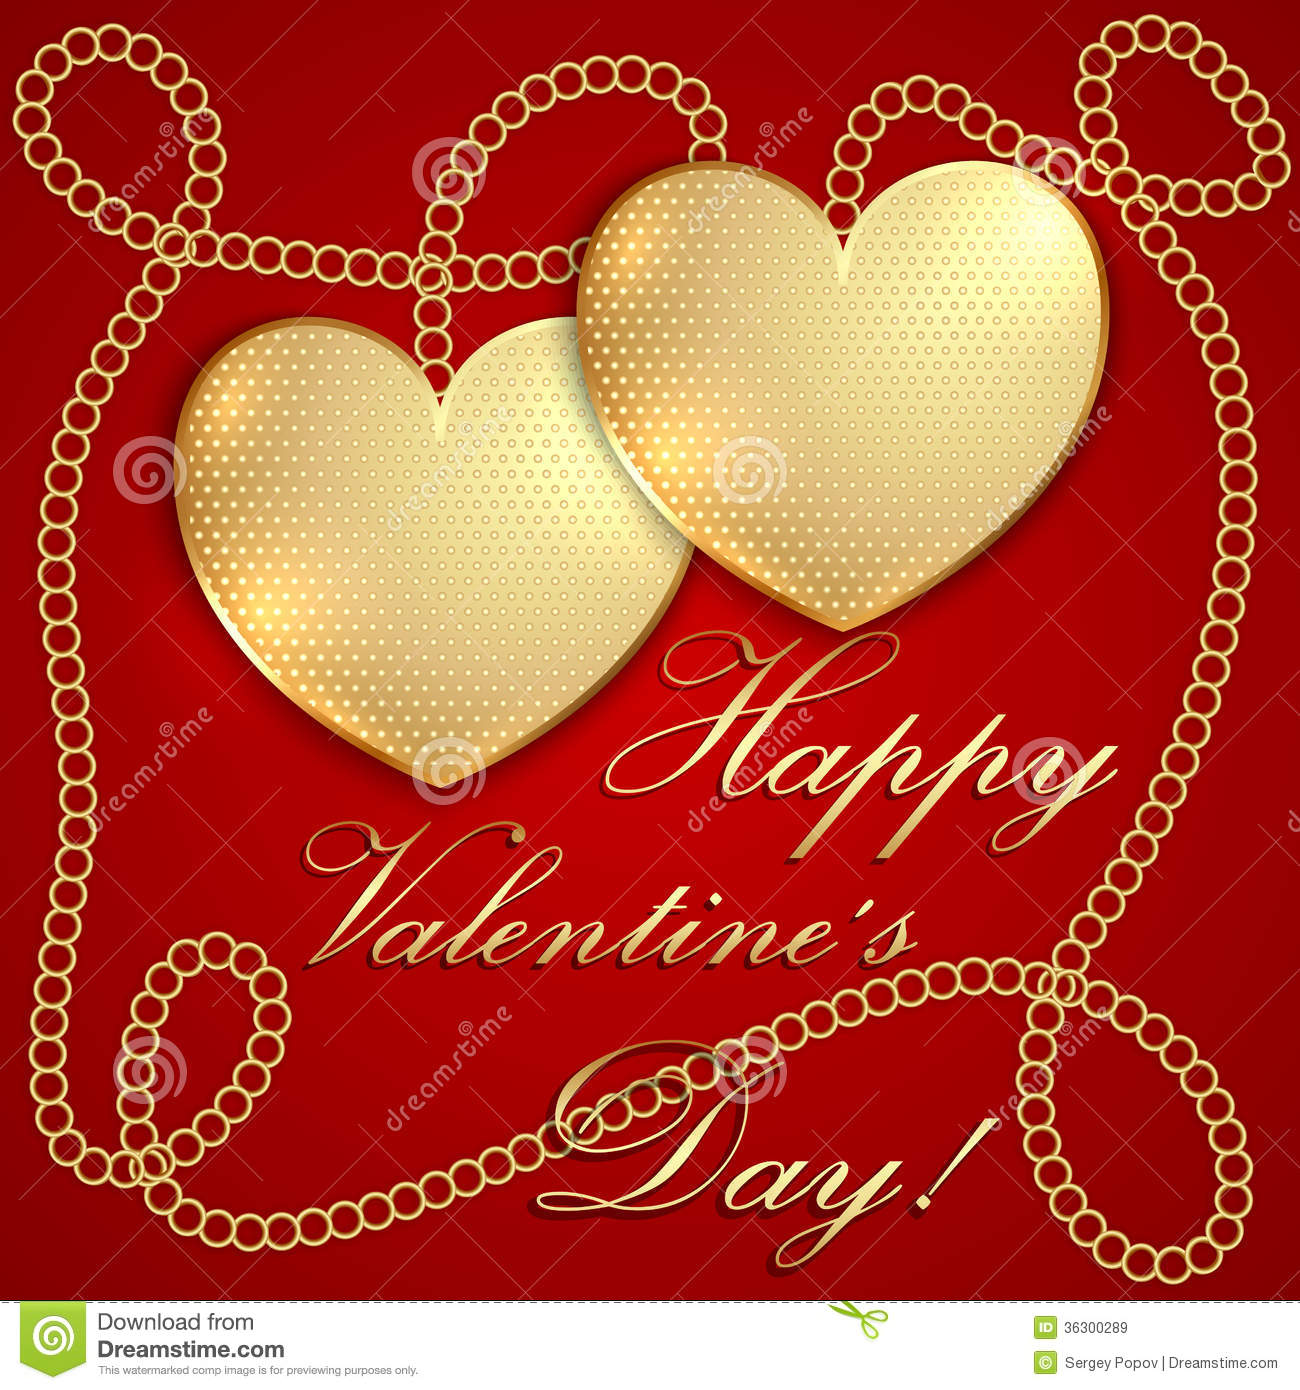 Vector Saint Valentine Greeting Card Royalty Free Images – Saint Valentine Card